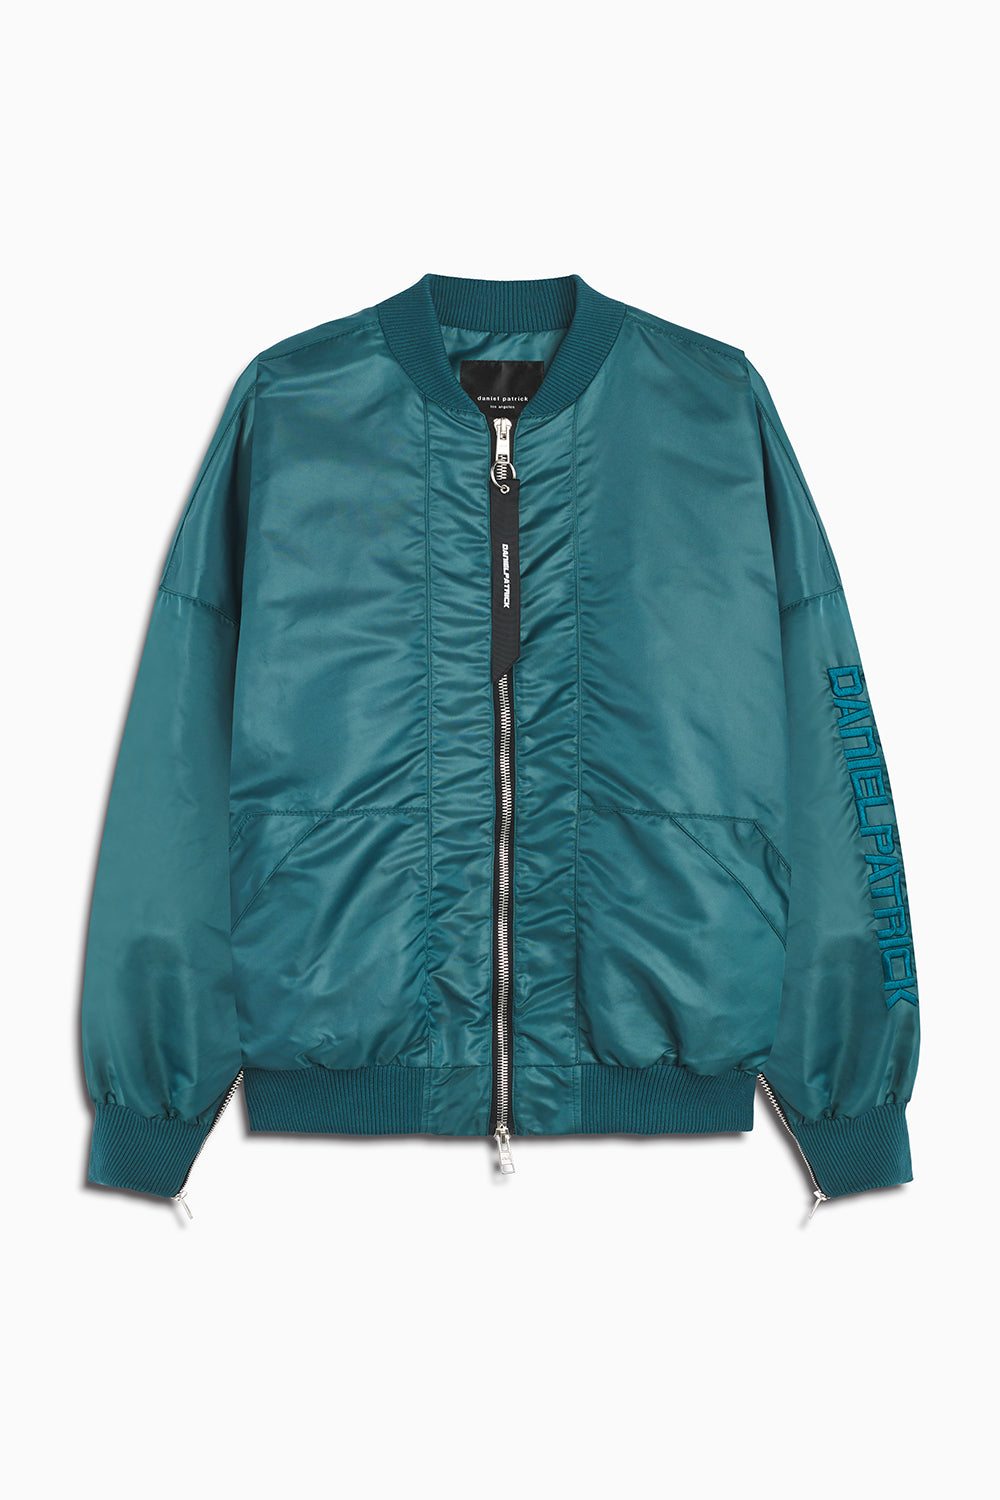 DP embroidered sleeve bomber jacket in emerald green by daniel patrick